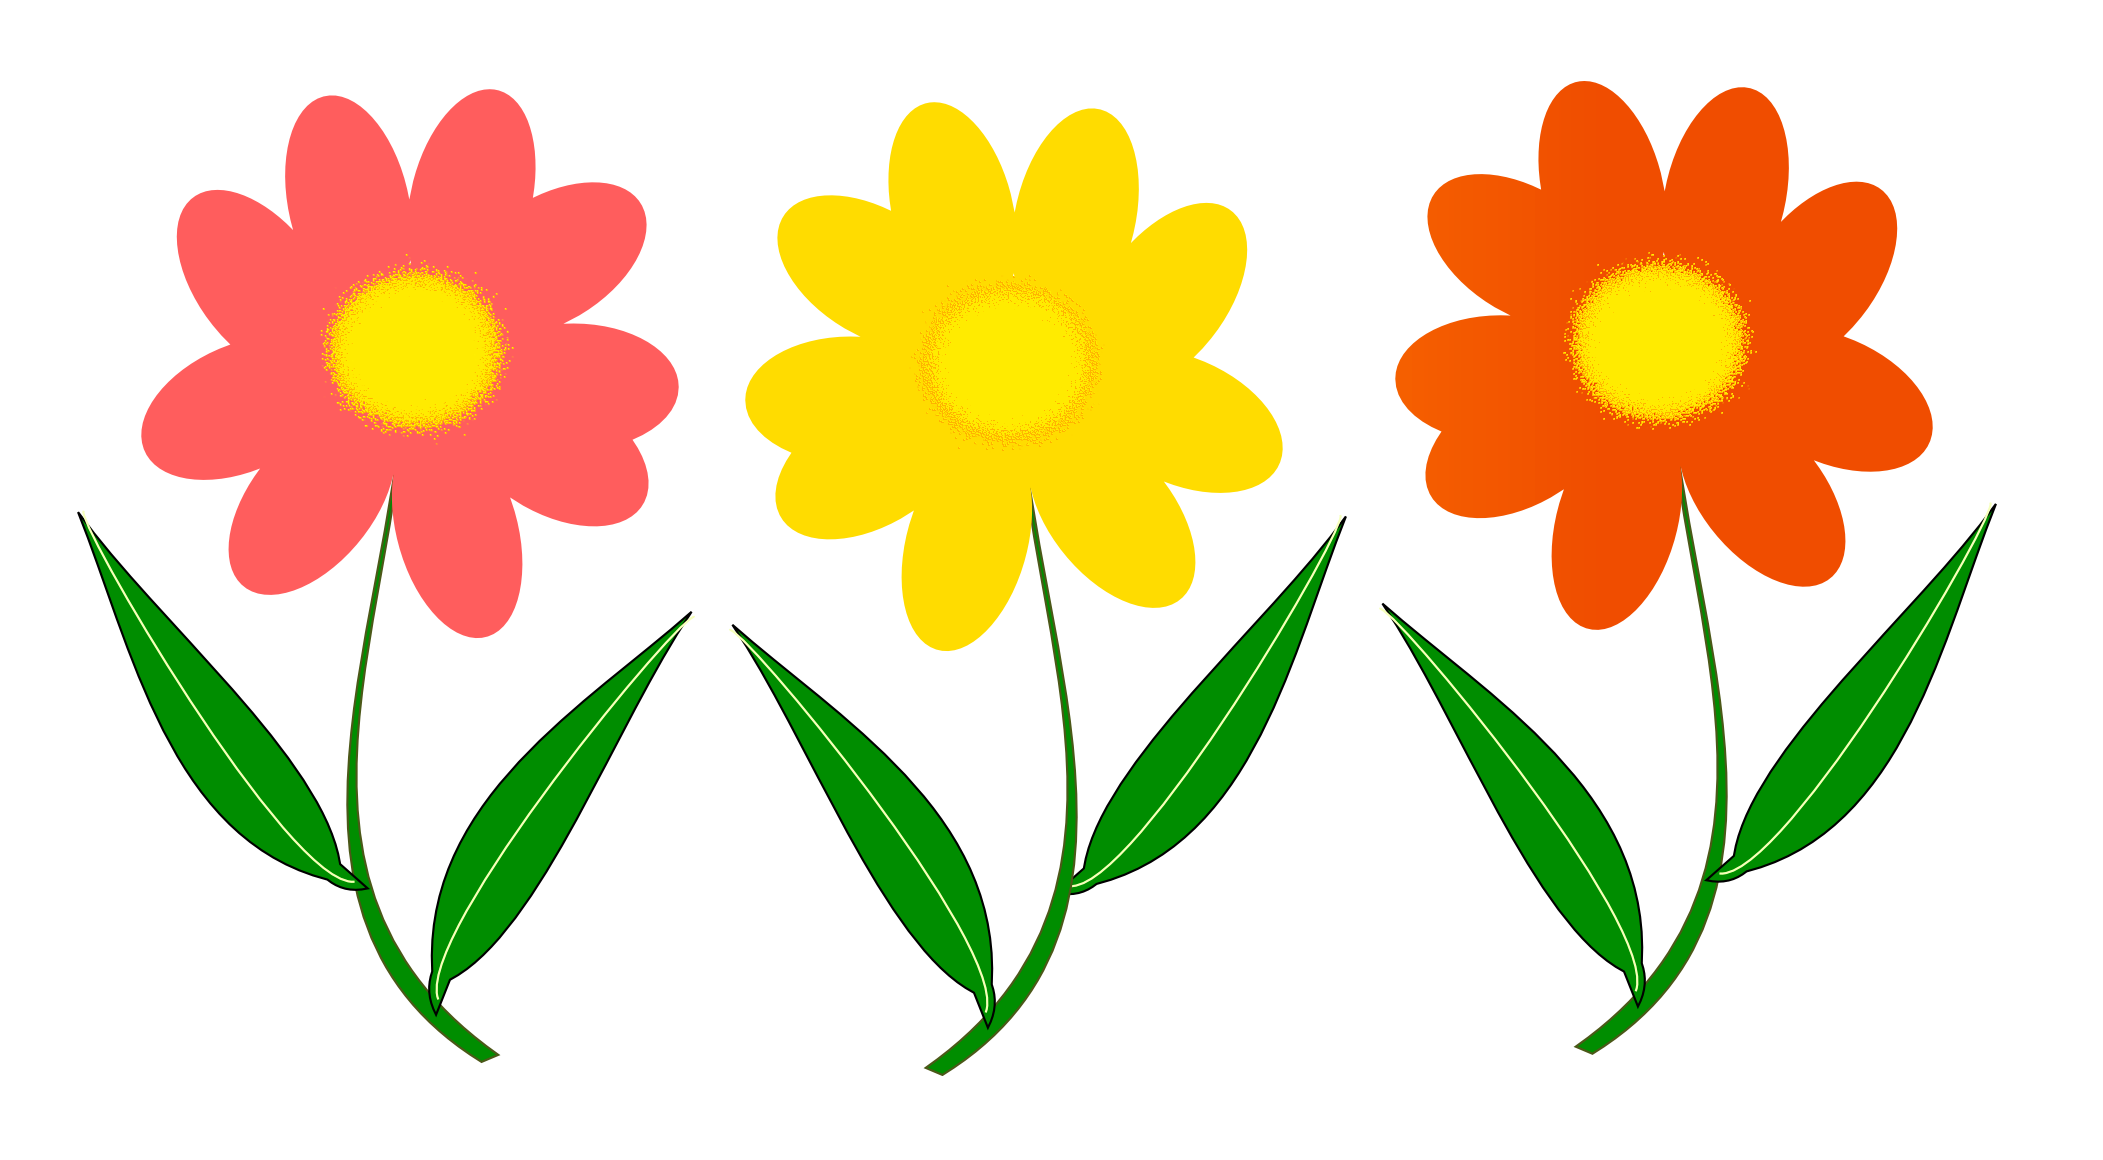 Flowers Vector Png Transparent Image 4746